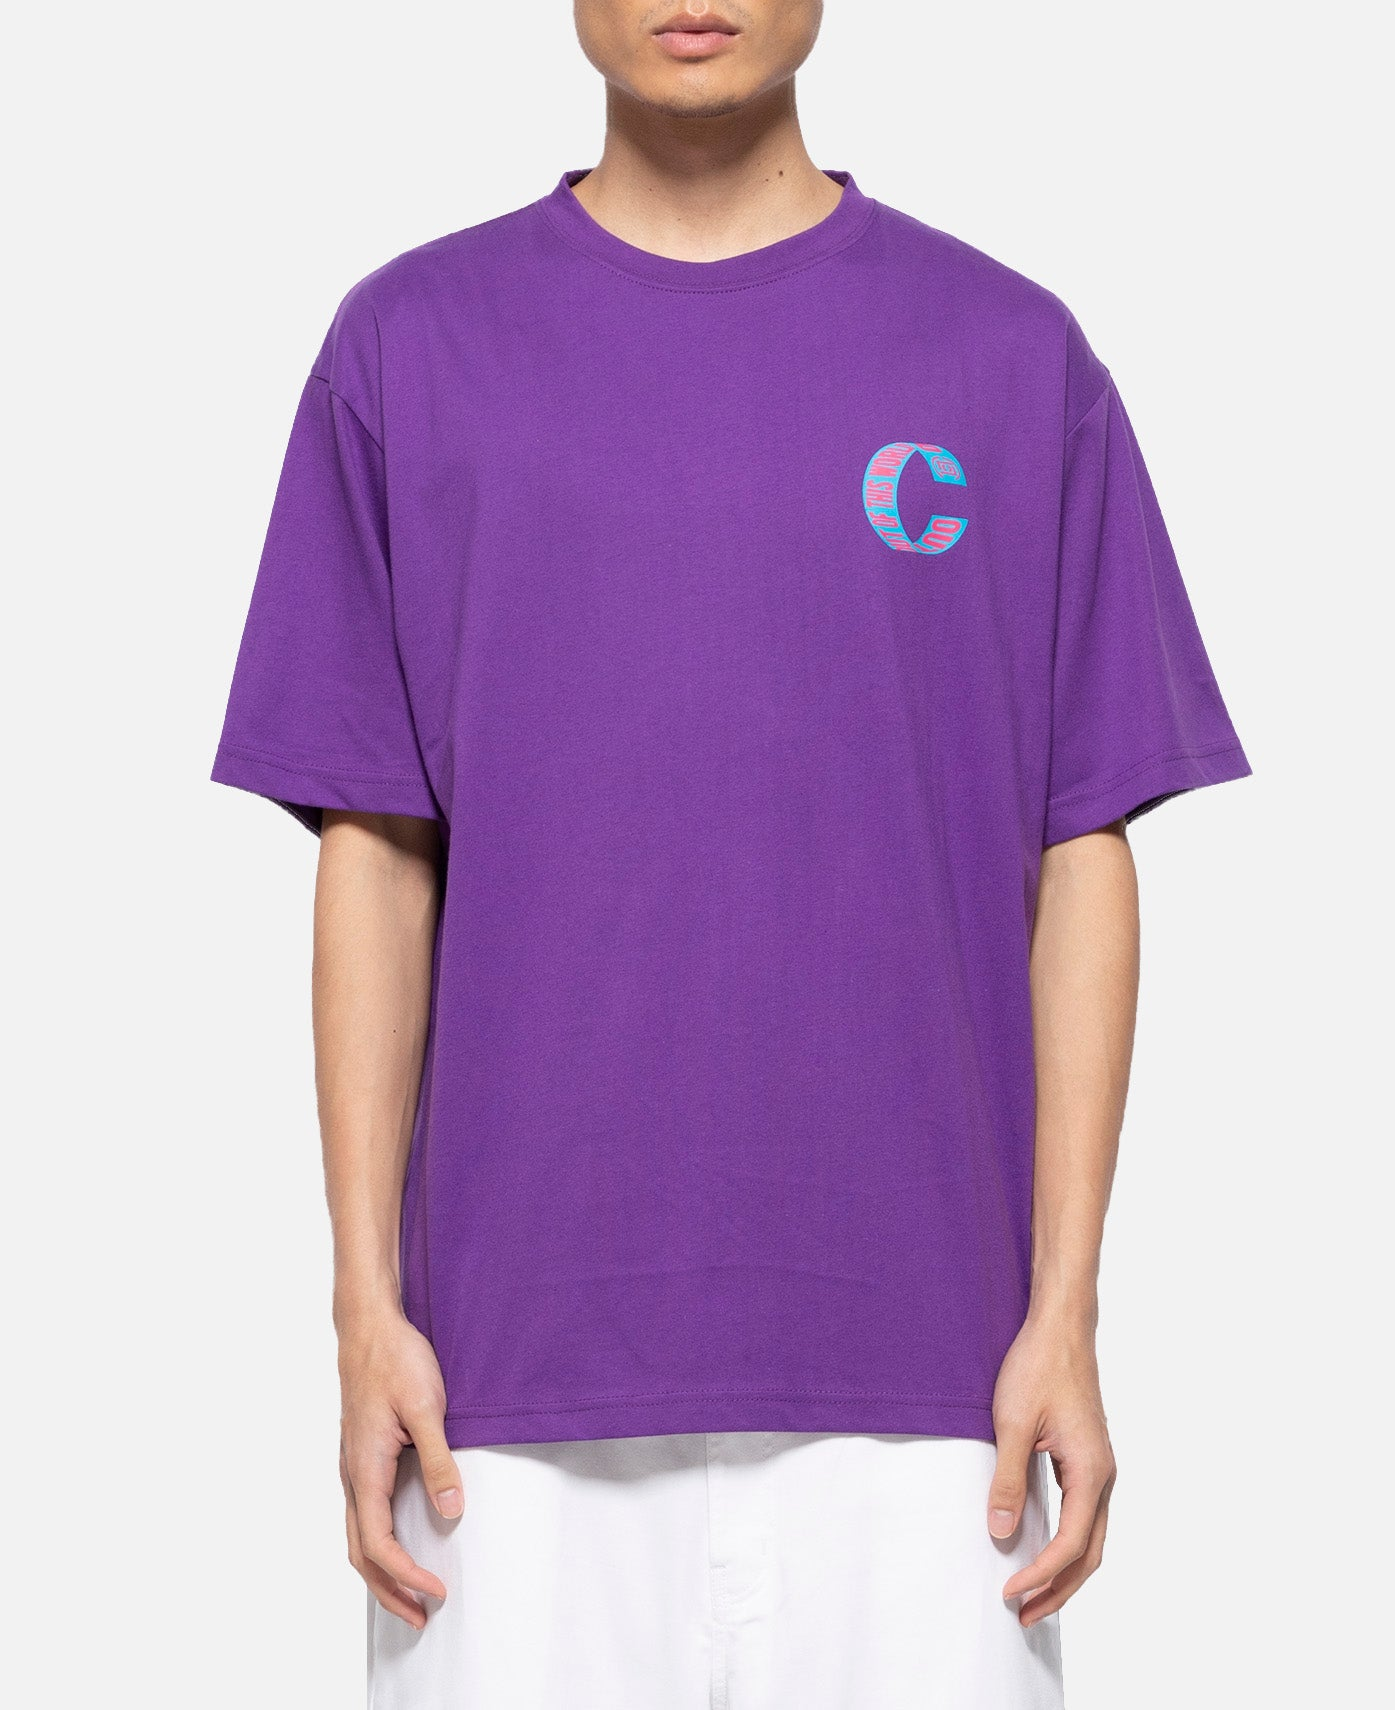 Out Of This World Loop T-Shirt (Purple)